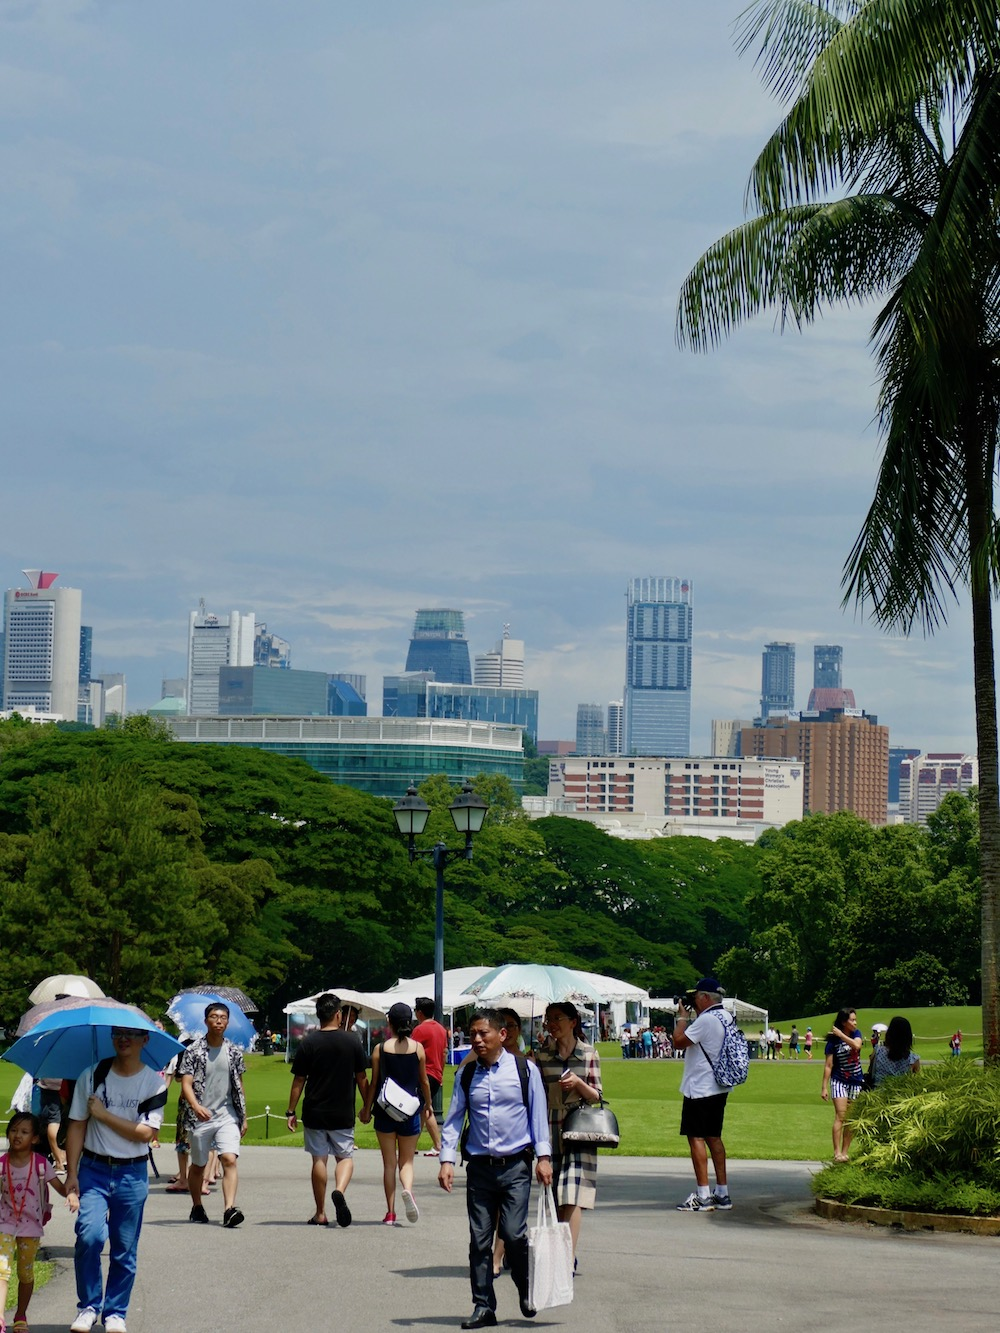 People strolling around at the Istana grounds in Singapore |curlytraveller.com